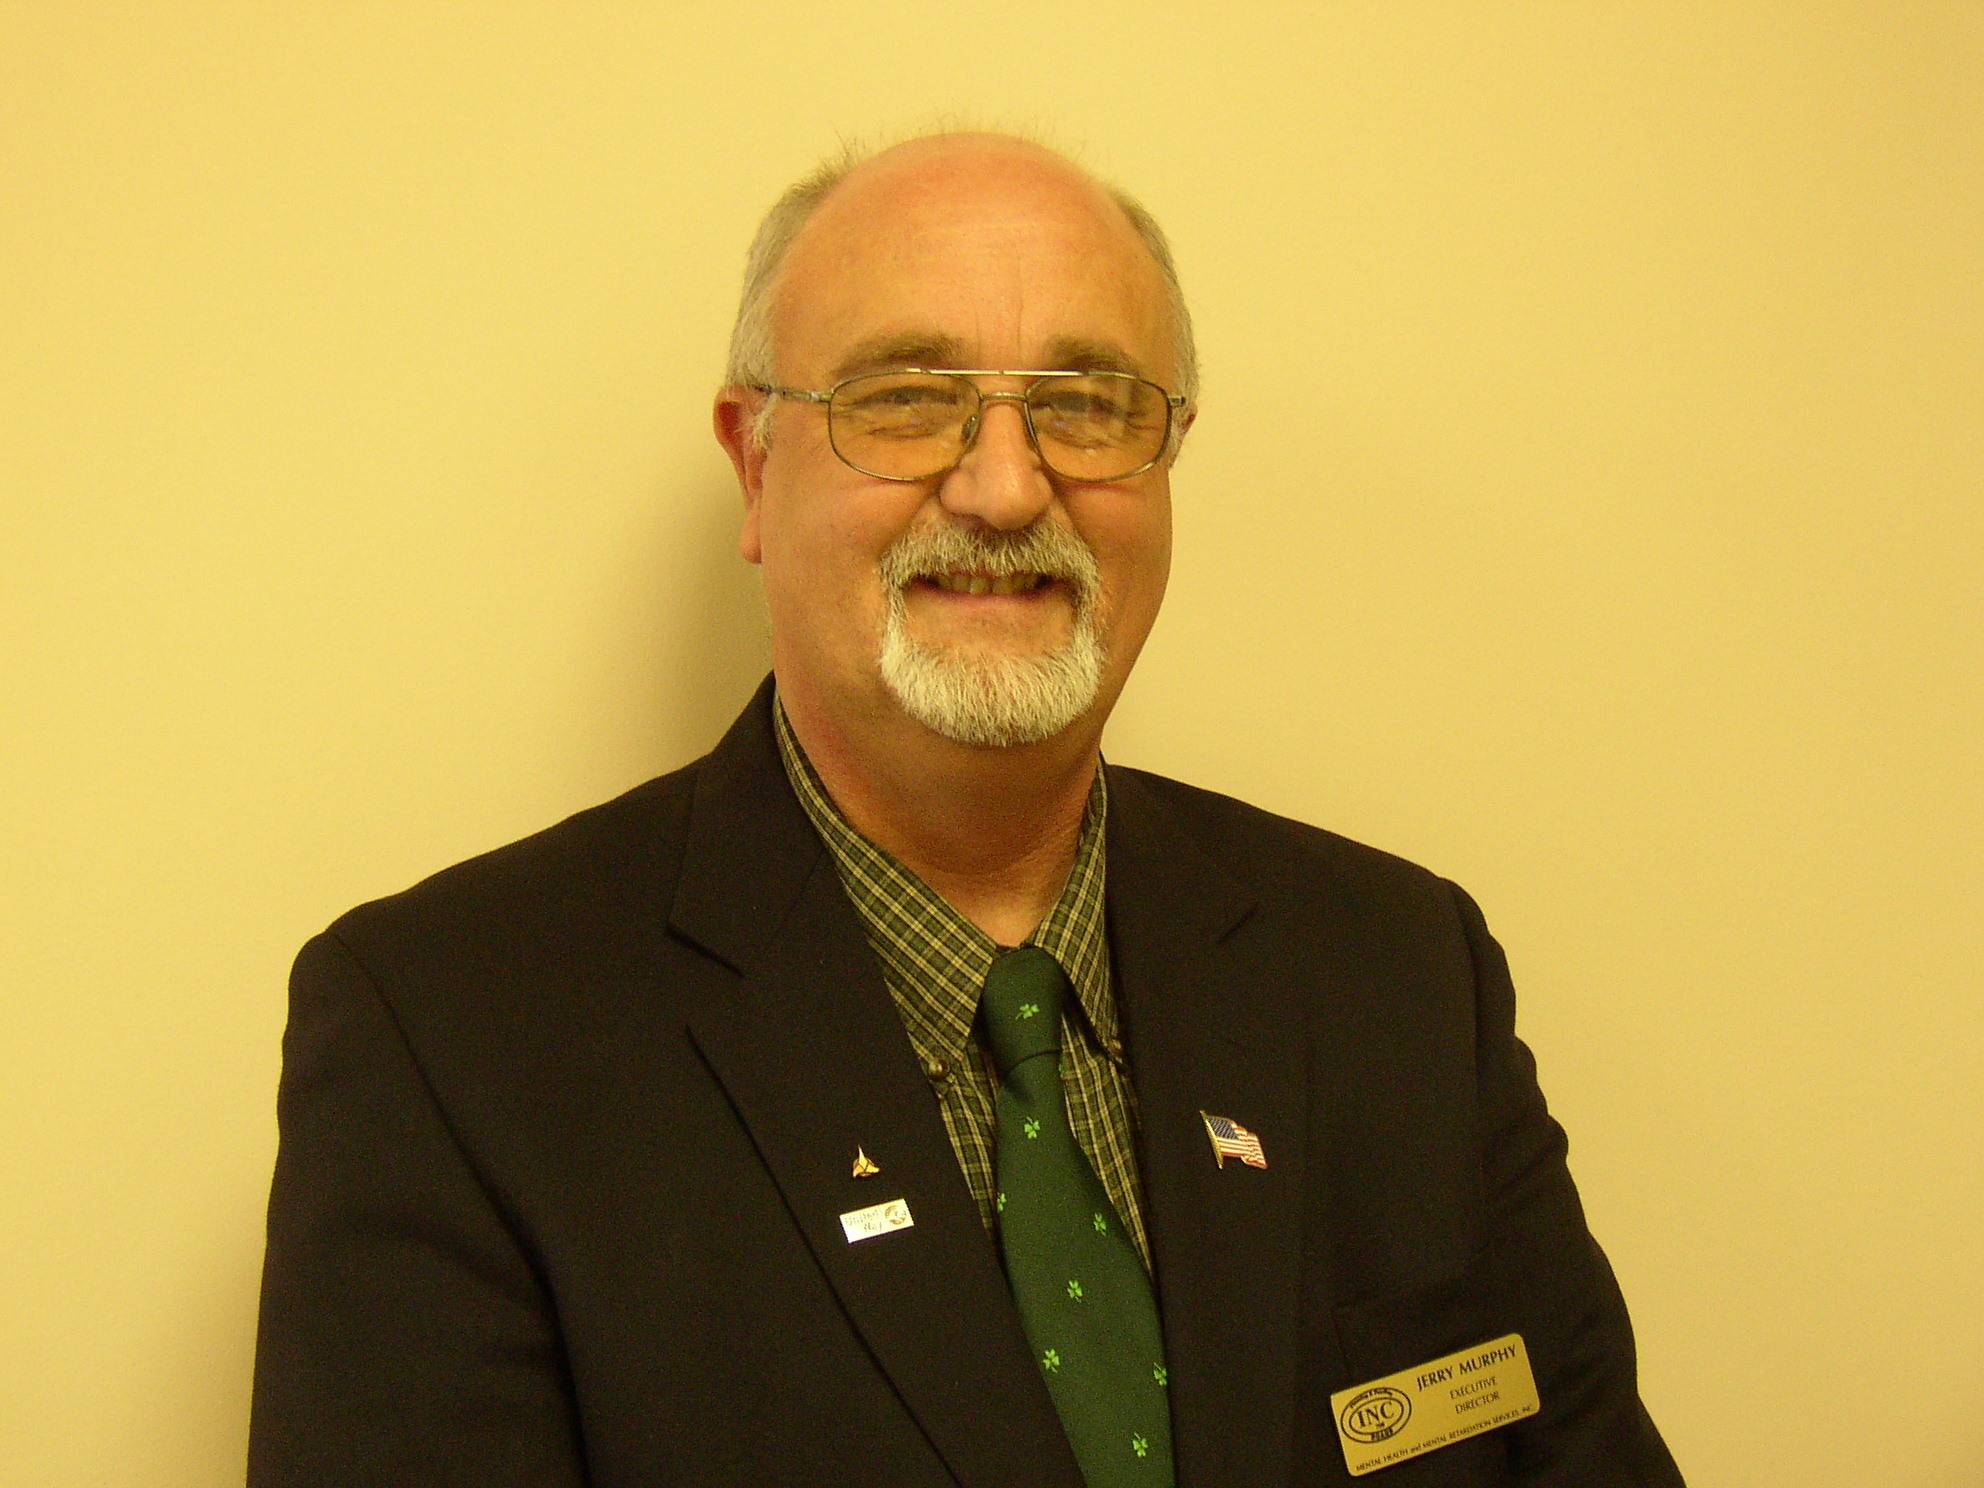 Jerry Murphy, running for Sugar Grove Township Community House Board (4-year Terms)